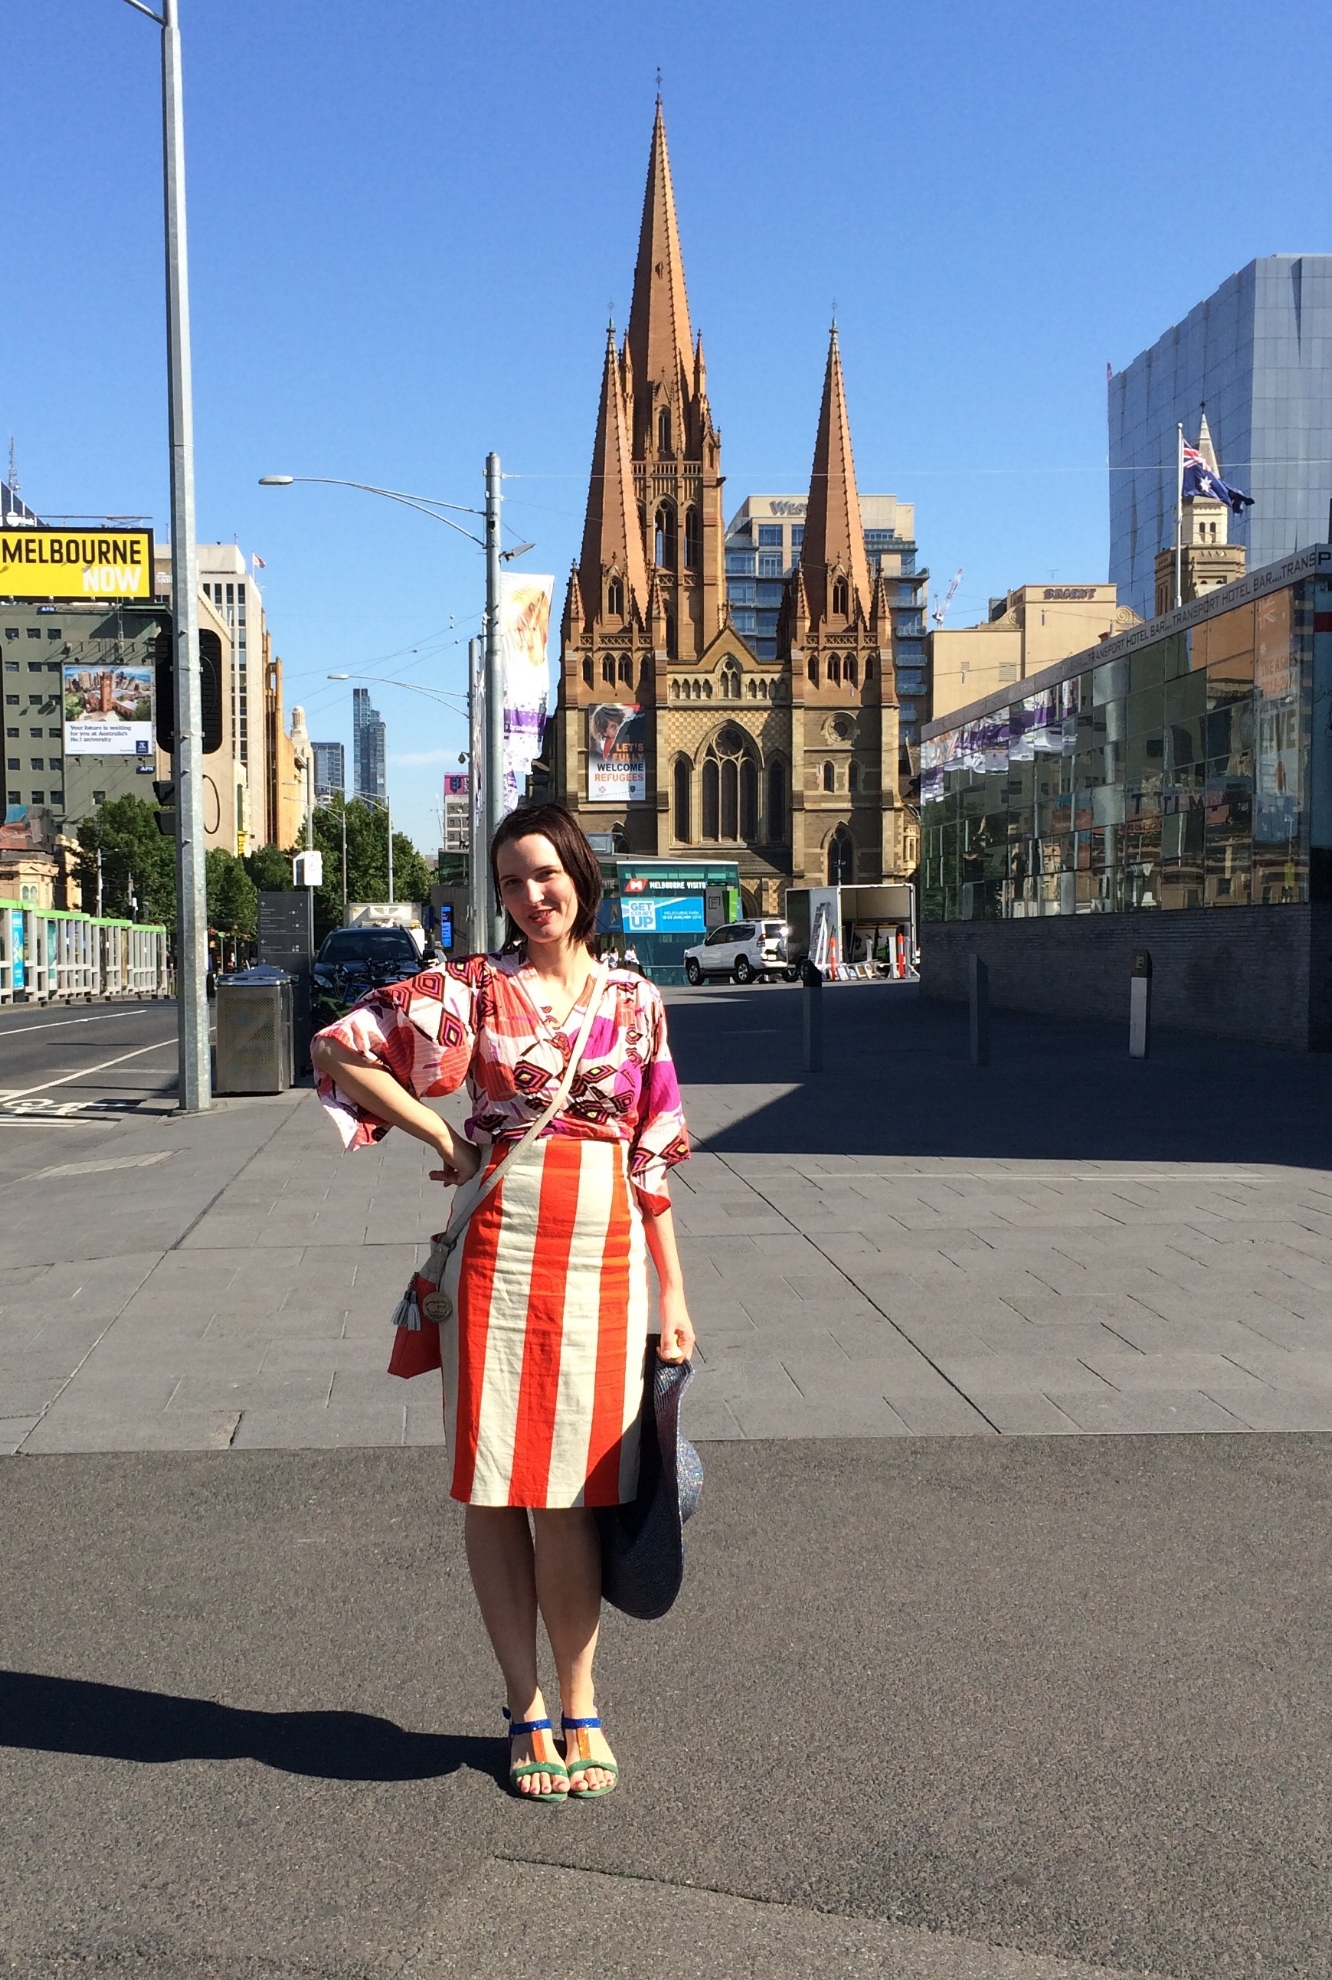 Here I am wearing the Coral Kimono in Melbourne, tucked into a pencil skirt. I always receive comments on this outfit!